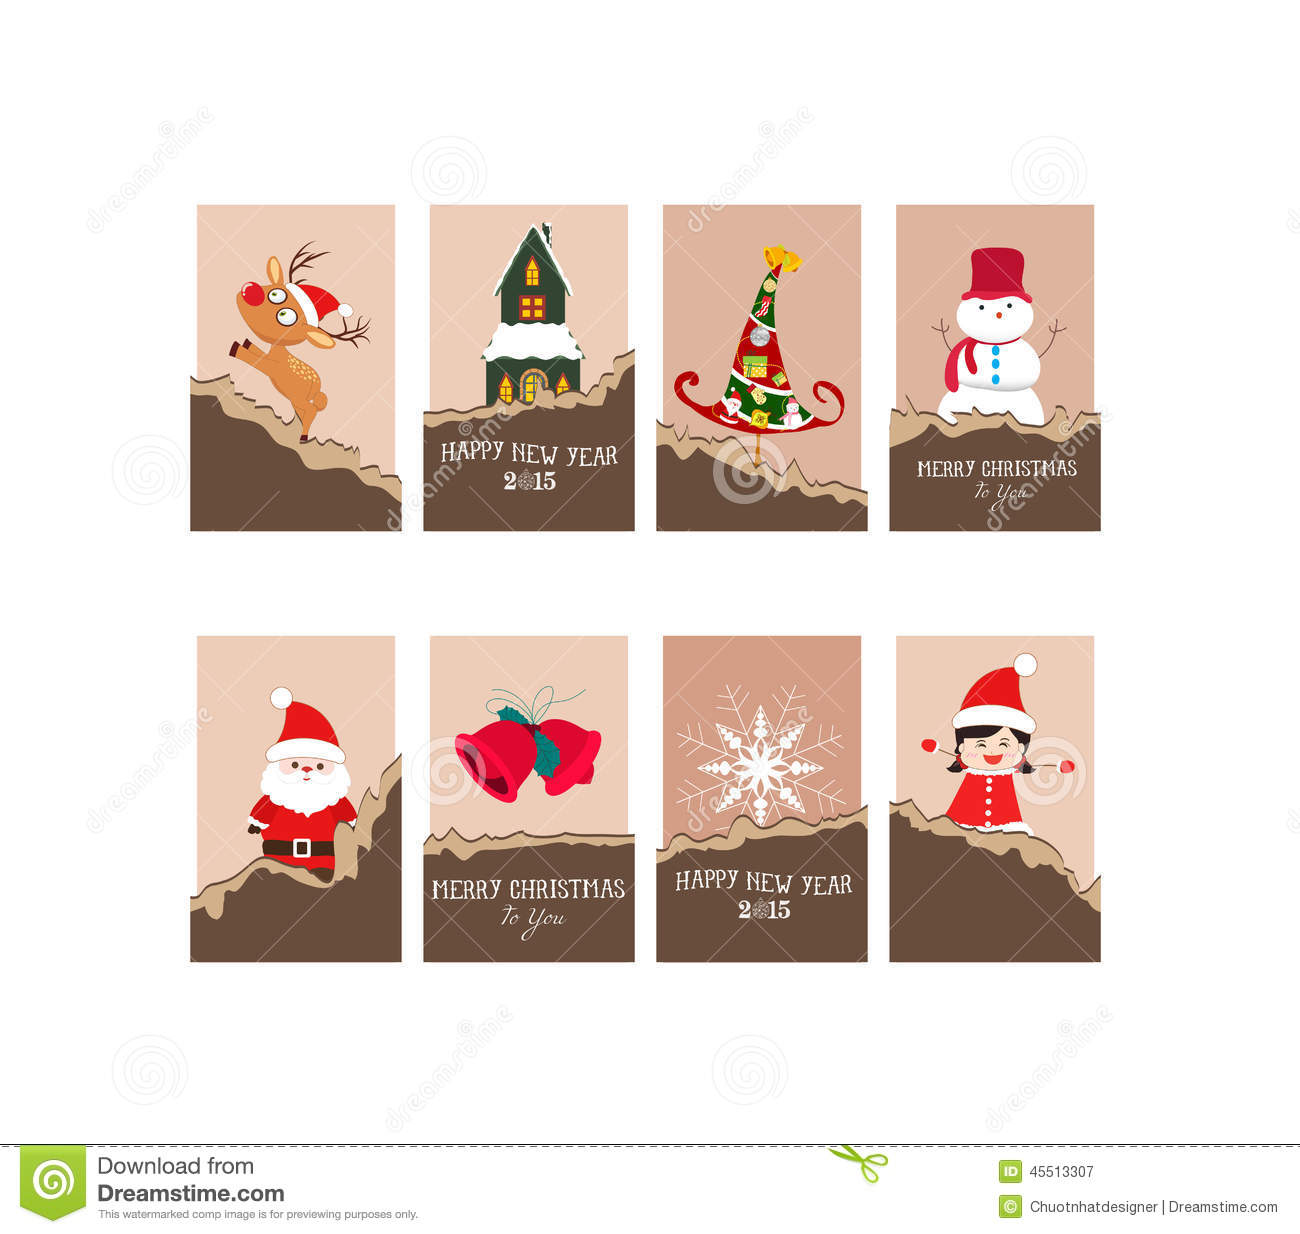 Christmas Gift Ideas For Design Lovers: Christmas Gift Cards Stock Vector. Image Of 2015, Artwork